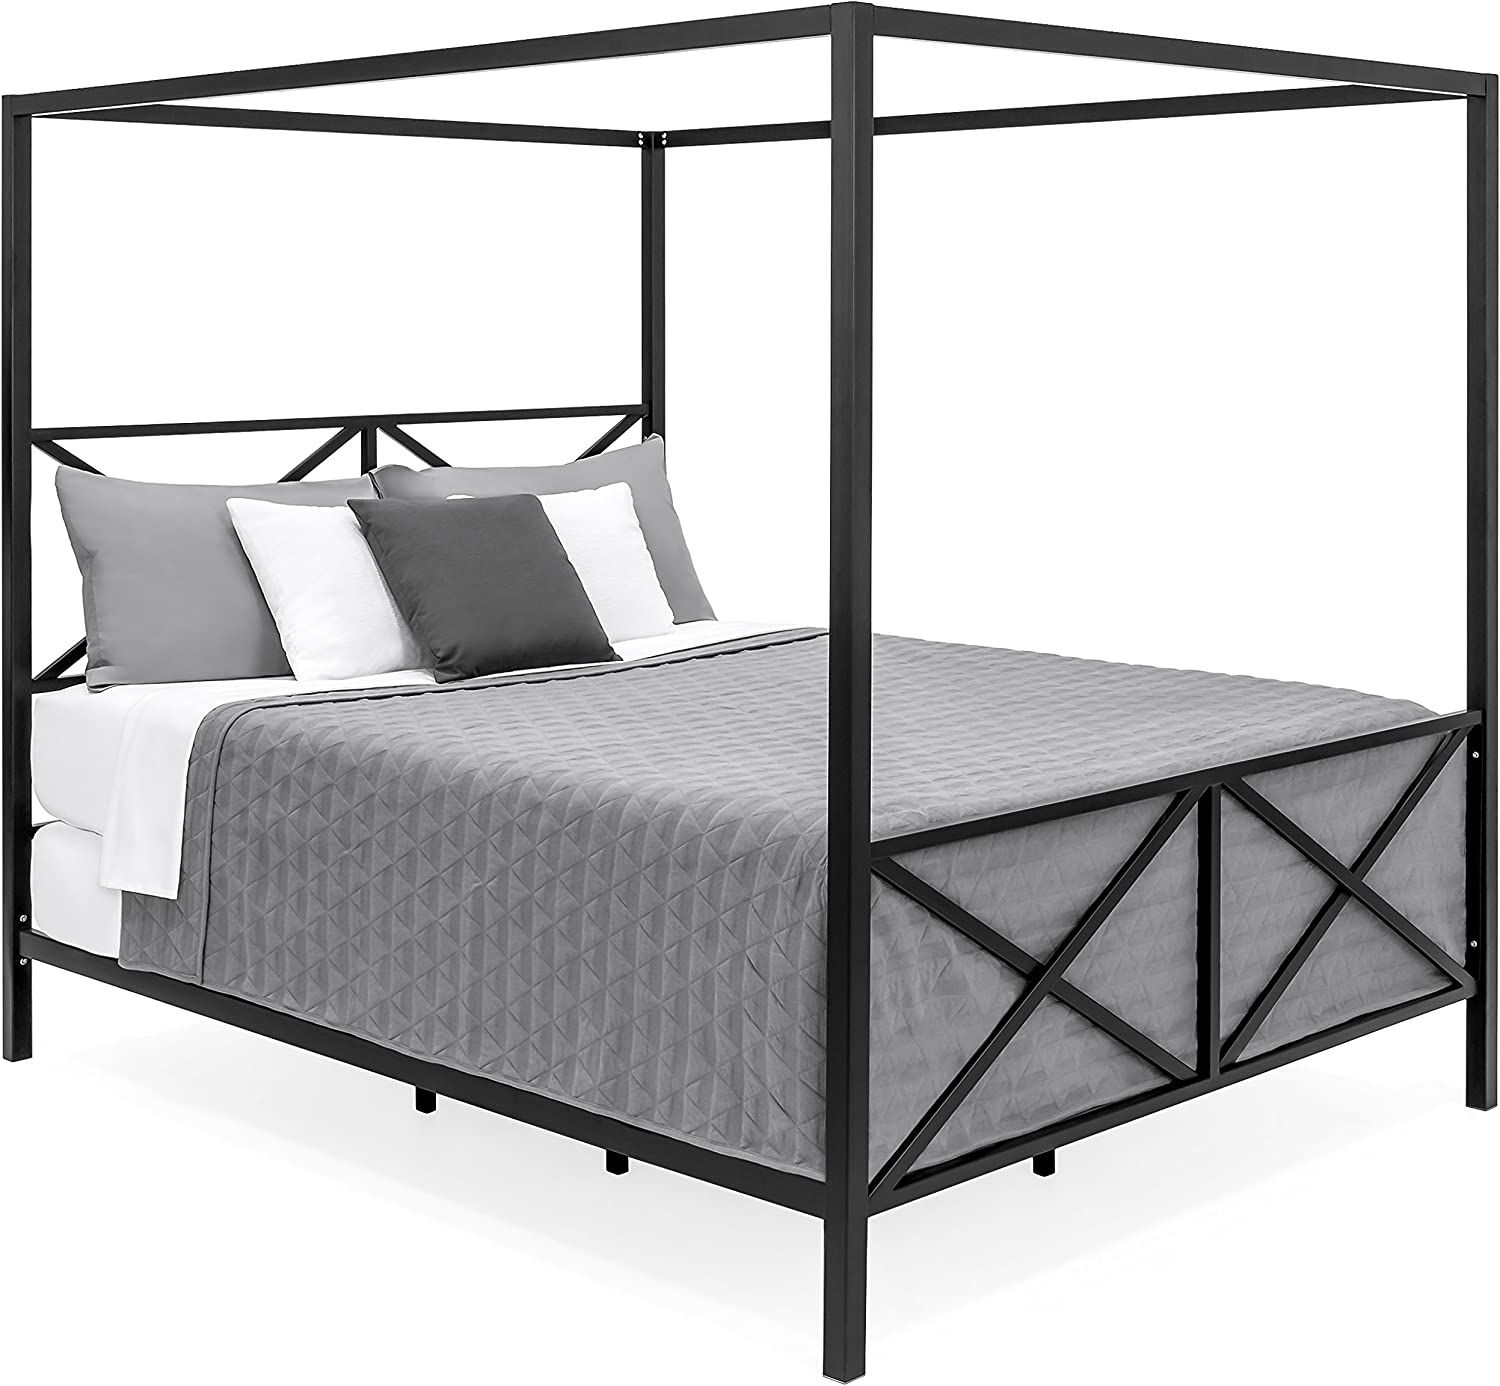 - Amazon.com: Best Choice Products Modern 4 Post Canopy Queen Bed W